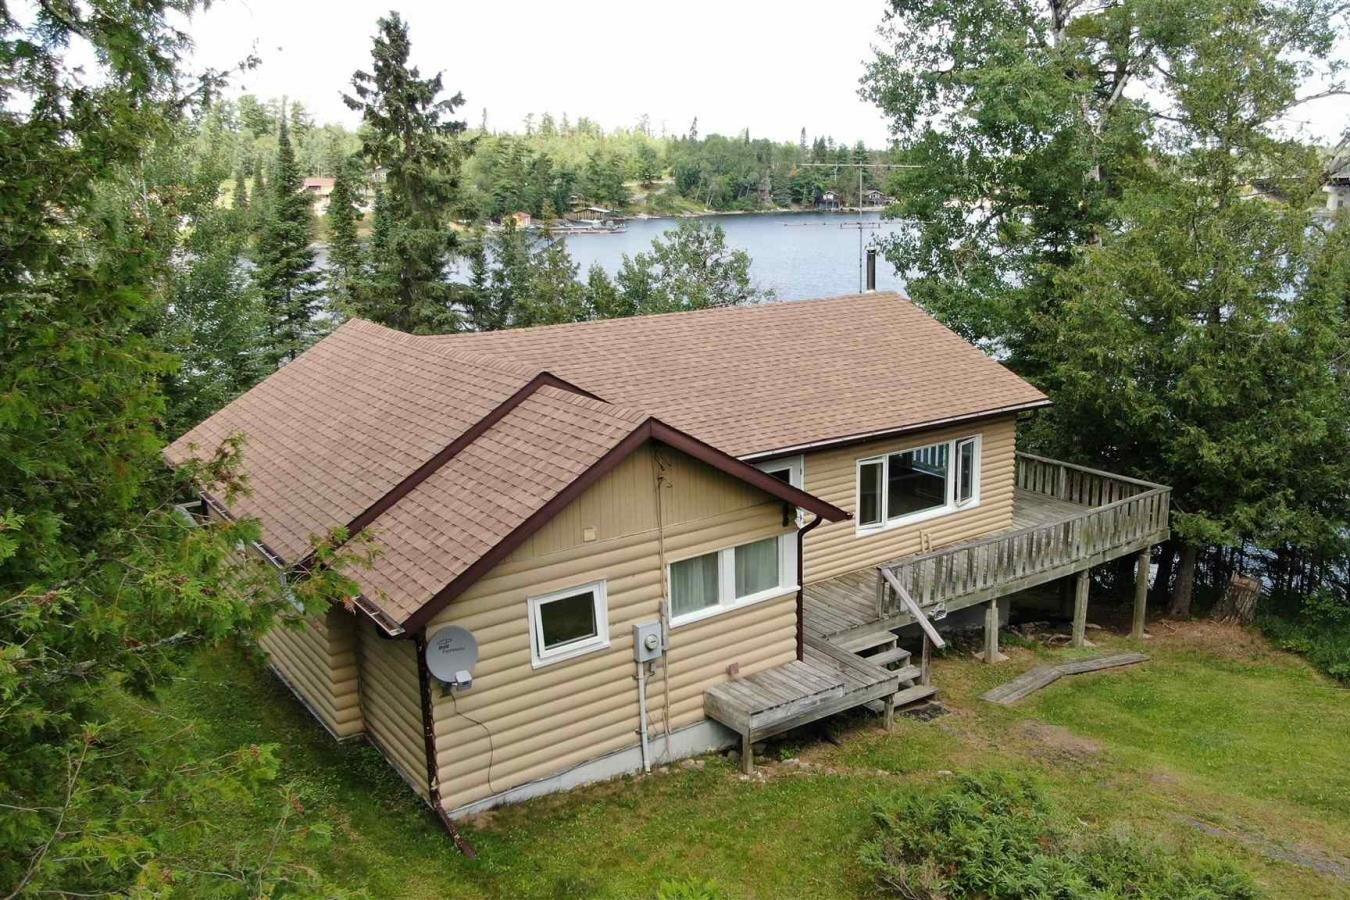 Residential property for sale at 38 Johnson Rd Sioux Narrows Ontario - MLS: TB200682